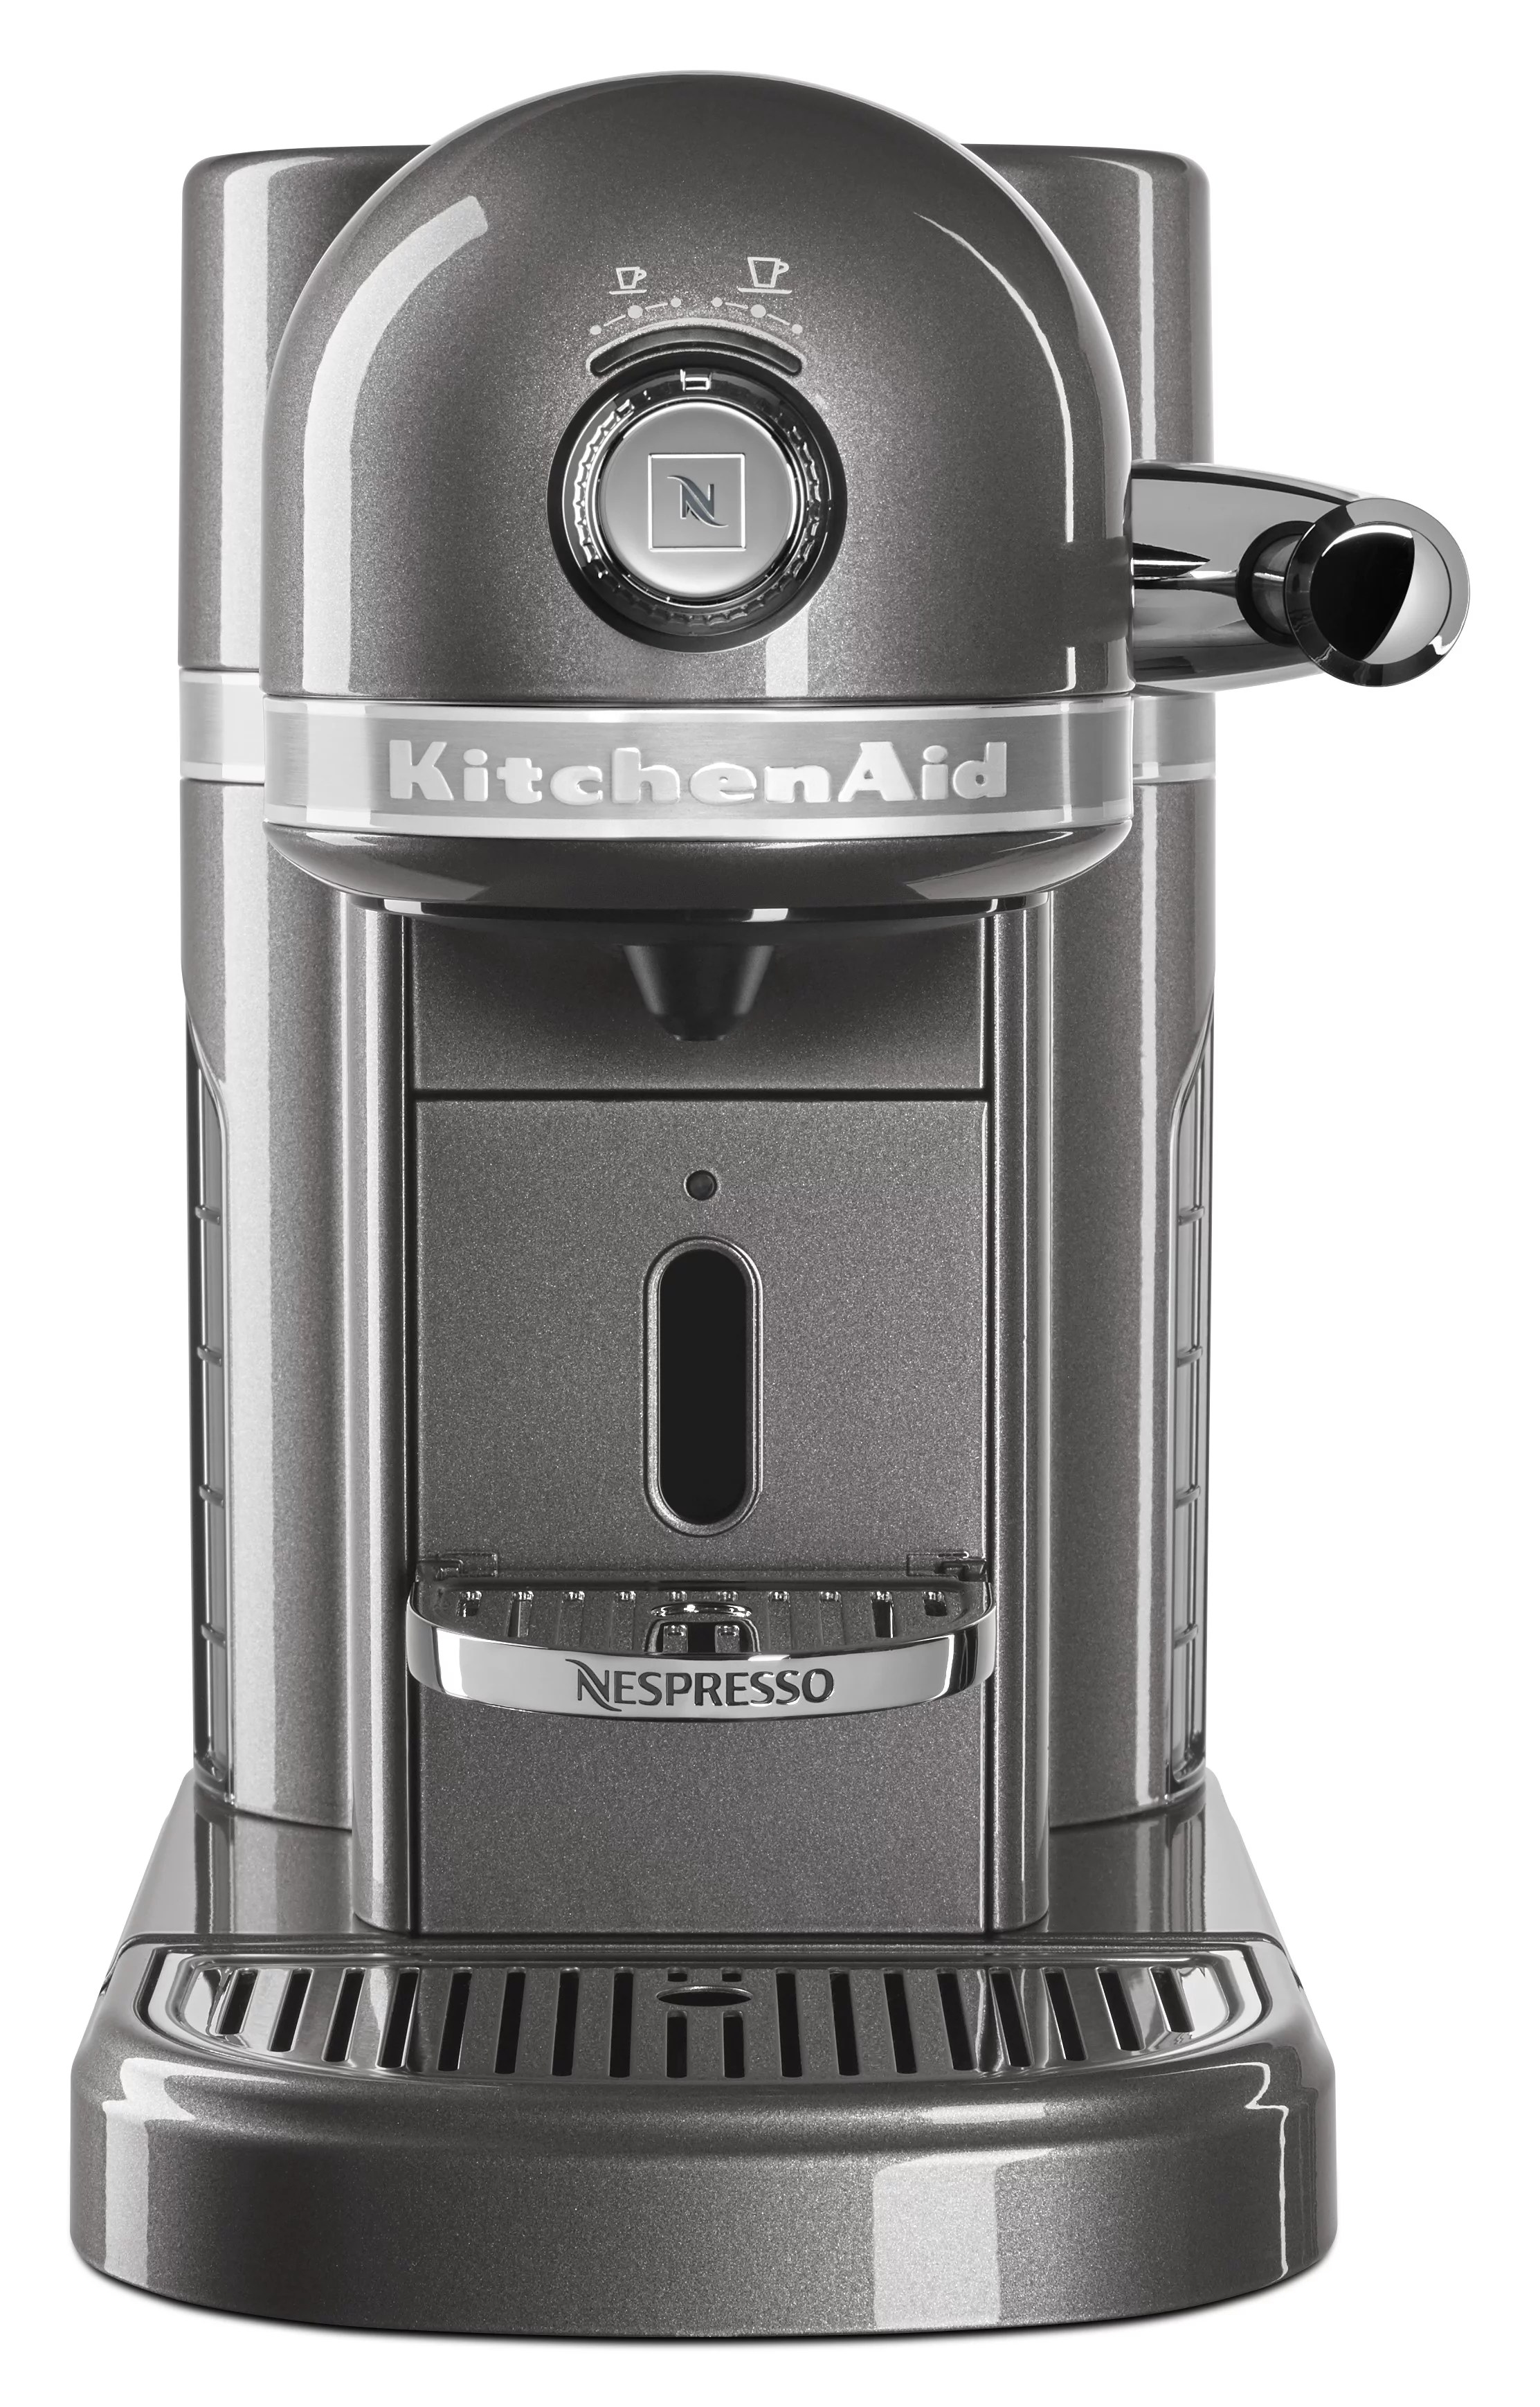 Kitchenaid Nespresso Espresso Maker By Kitchenaid With Milk Frother Kes0504ms